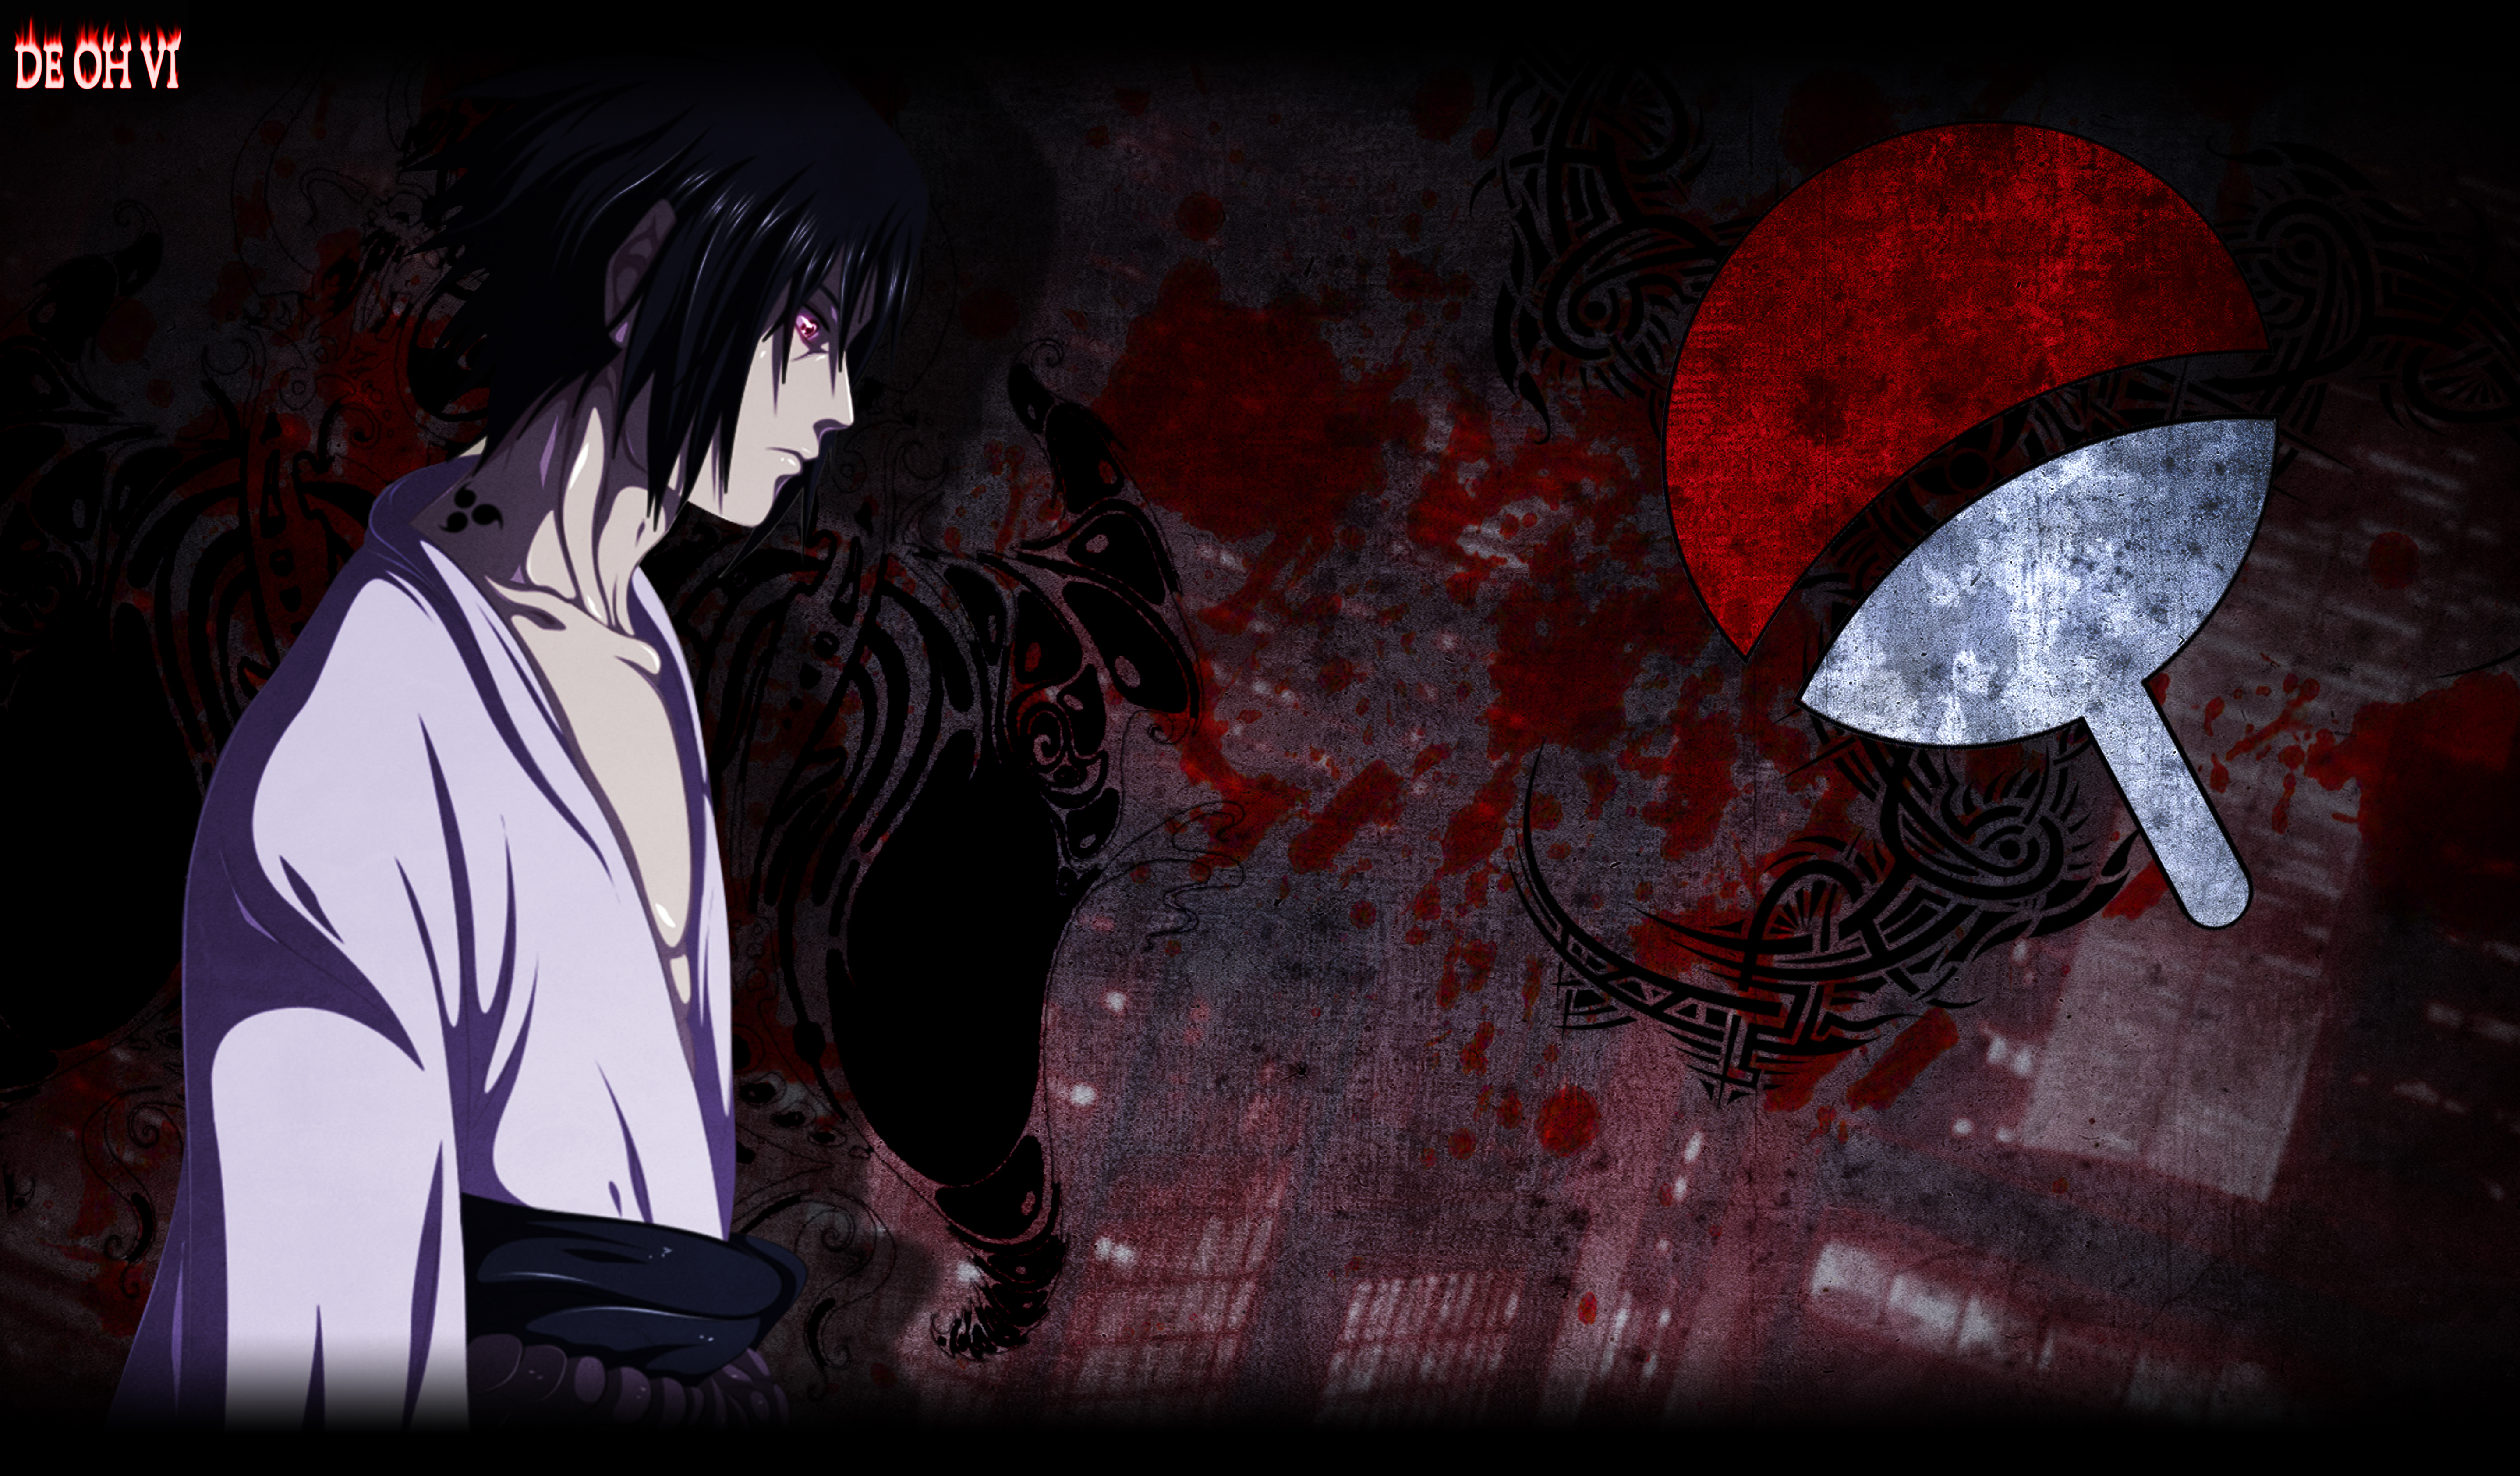 Uchiha sasuke hd wallpaper zerochan anime image board uchiha sasuke download uchiha sasuke image voltagebd Image collections